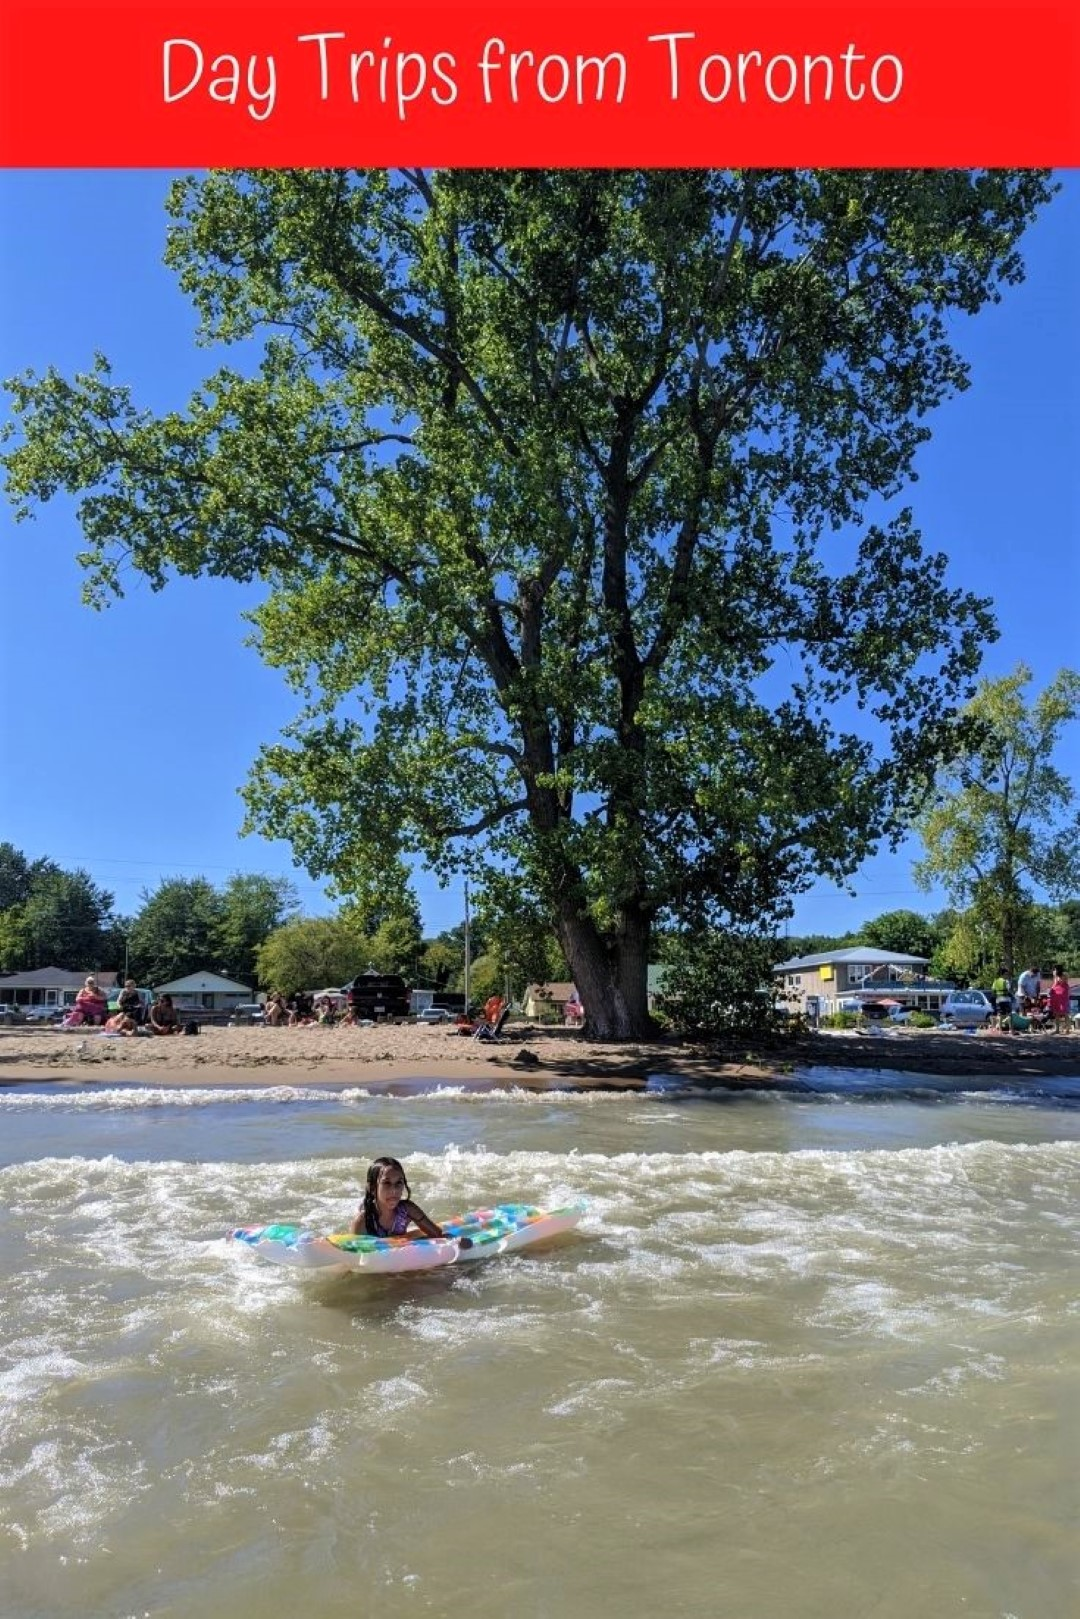 Day trips from Toronto